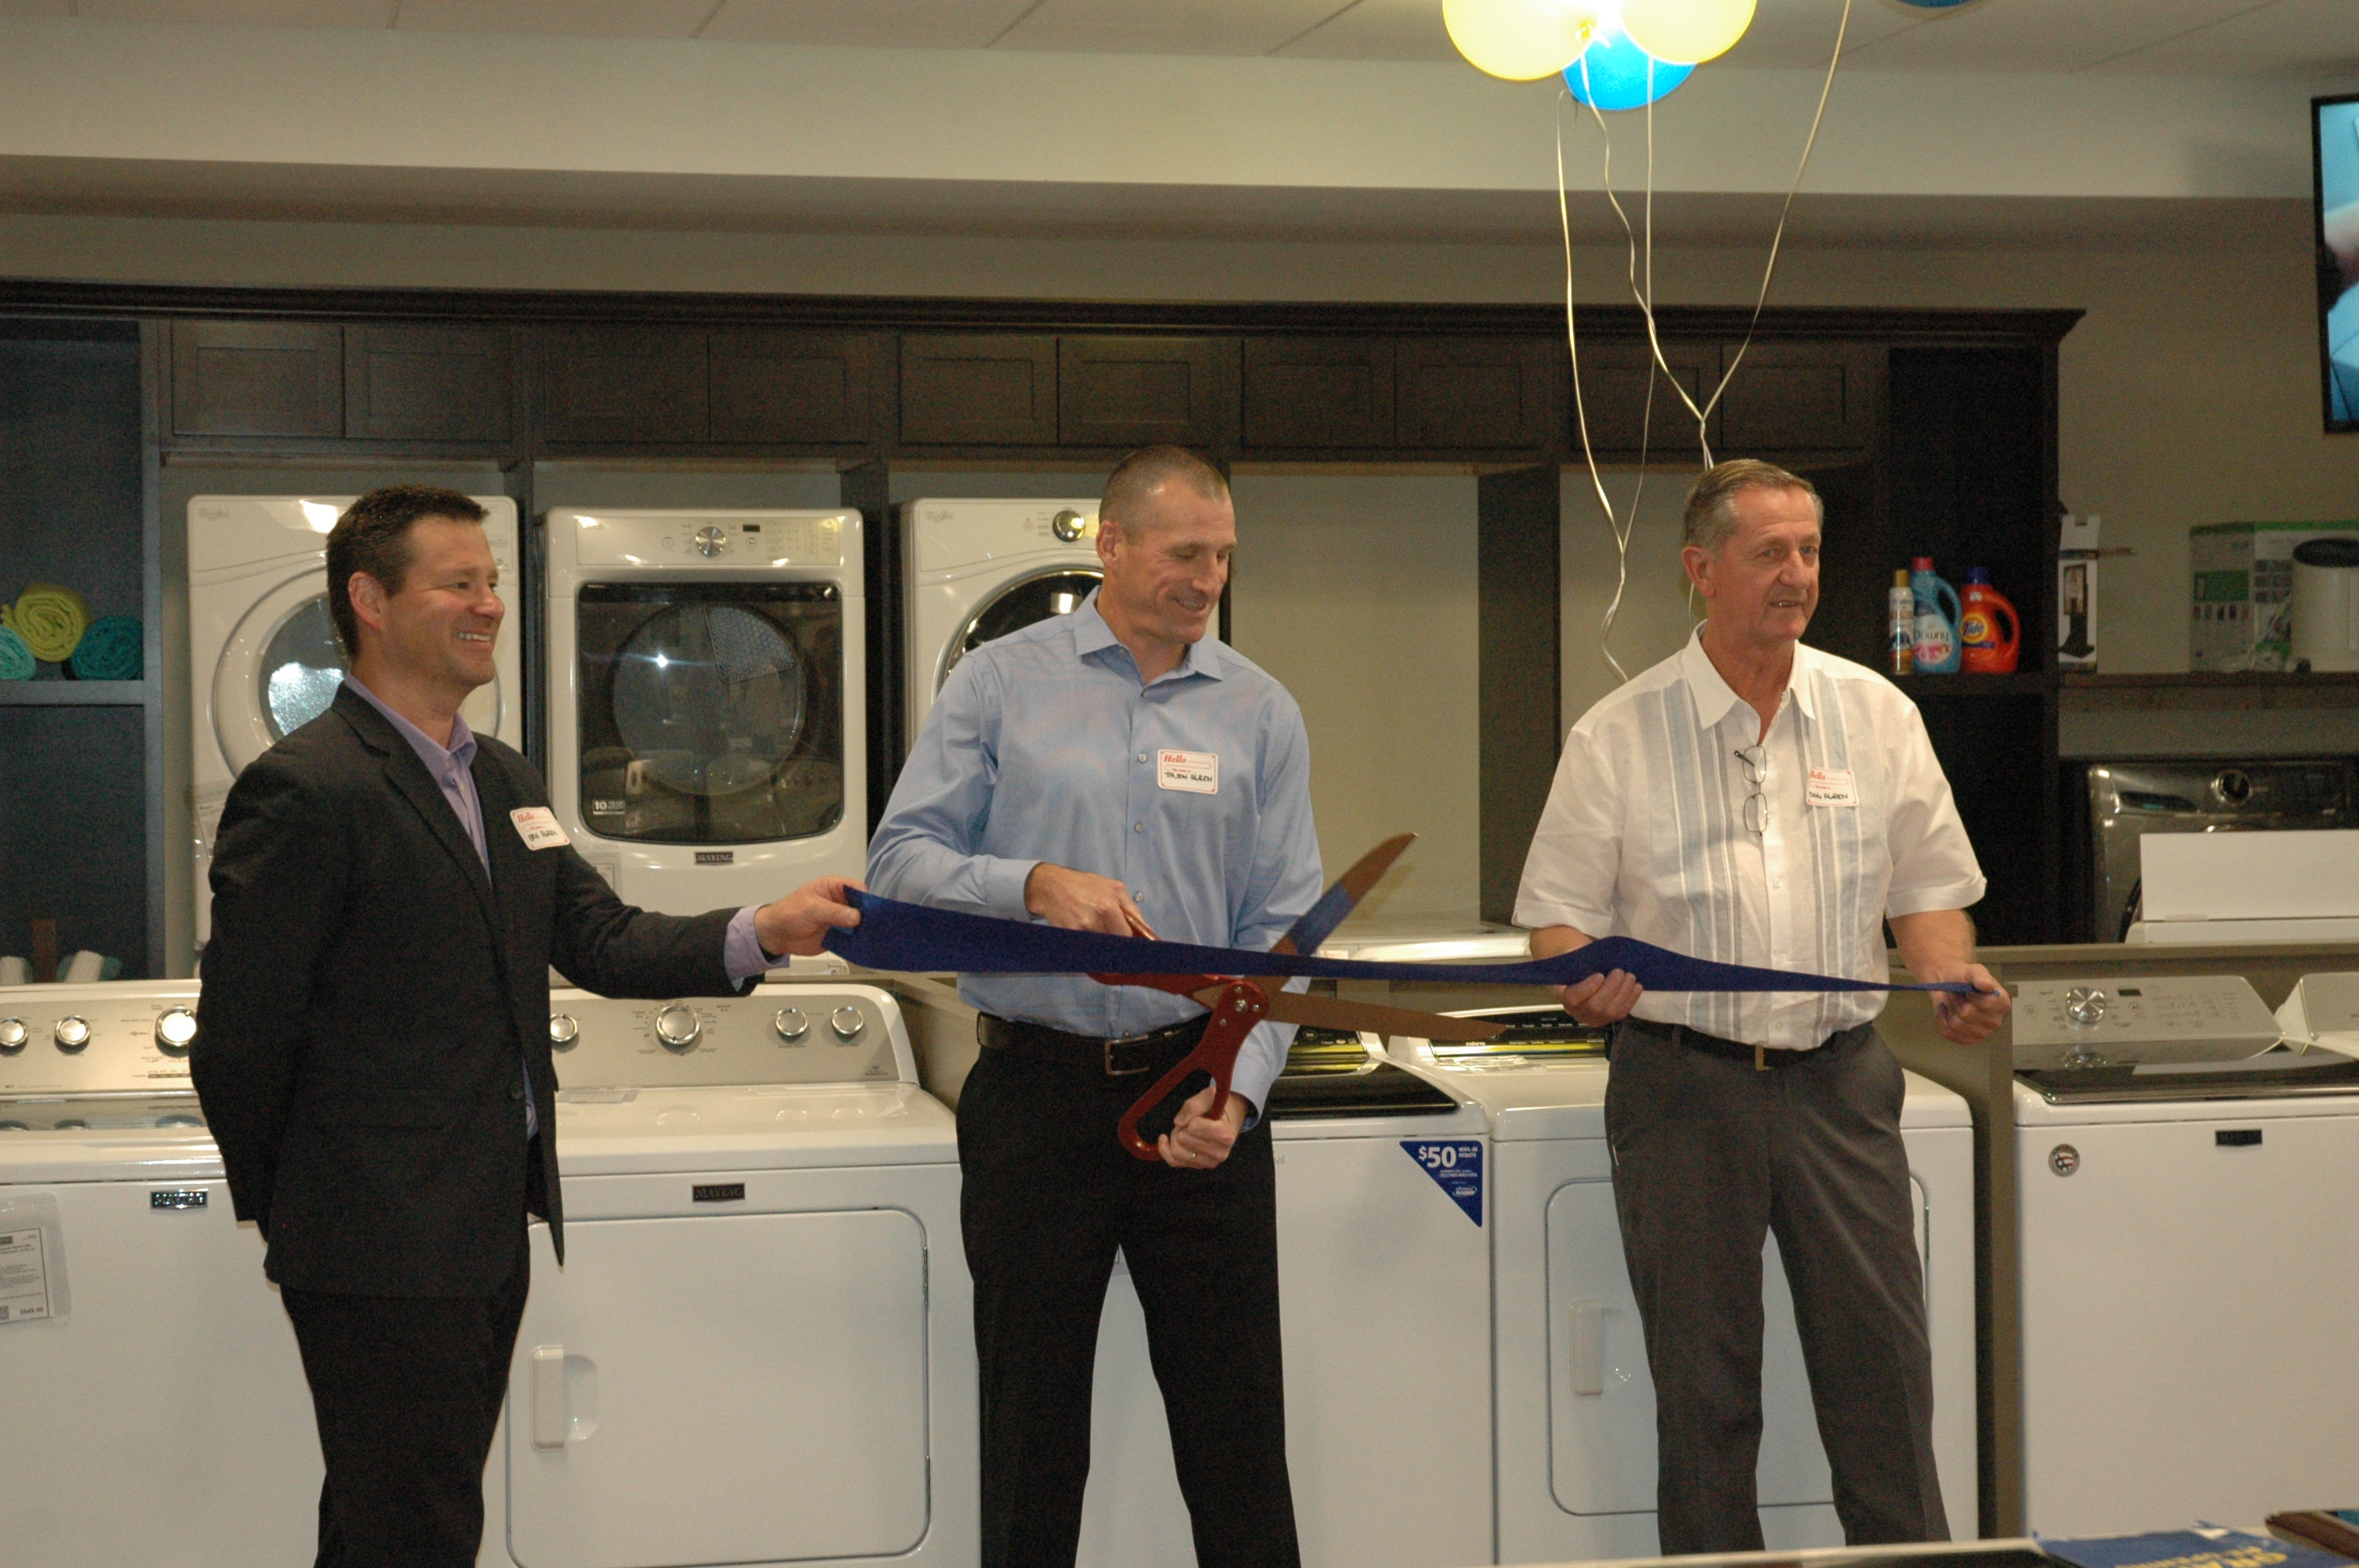 Jason Agren, center, prepares to cut a ribbon that his brother Eric, left, and father, Douglas, right, are holding at Agren Appliance in Saco on Friday.LIZ GOTTHELF/Journal Tribune